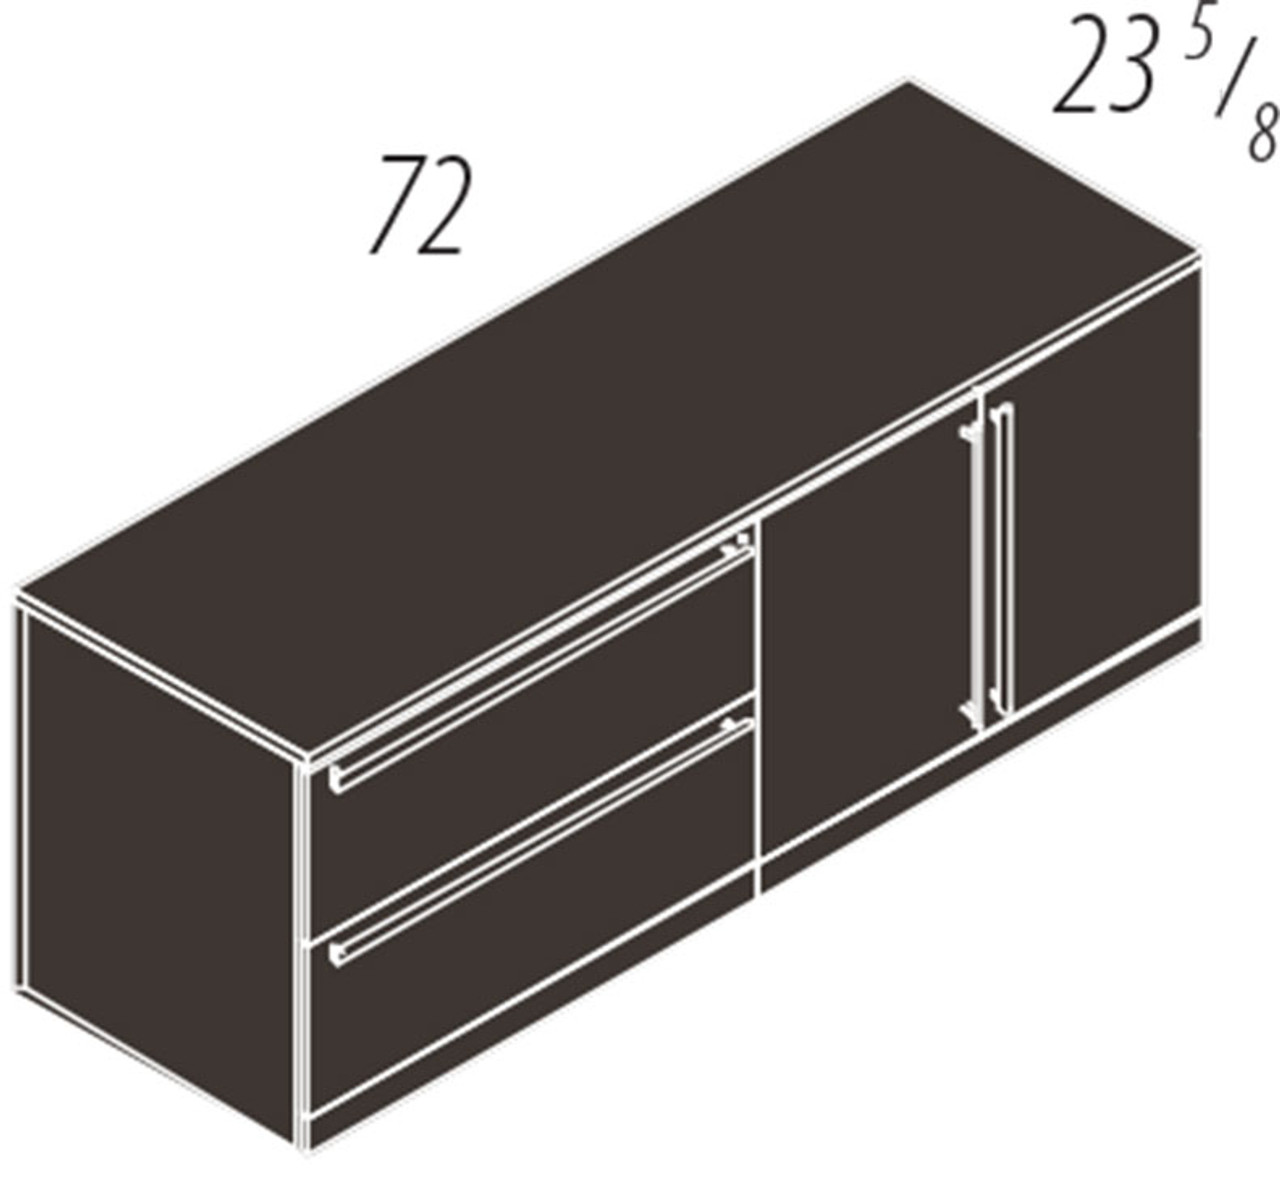 2 Doors 2 Drawers Lateral File Low Wall Cabinet, #CH-VER-CAB13